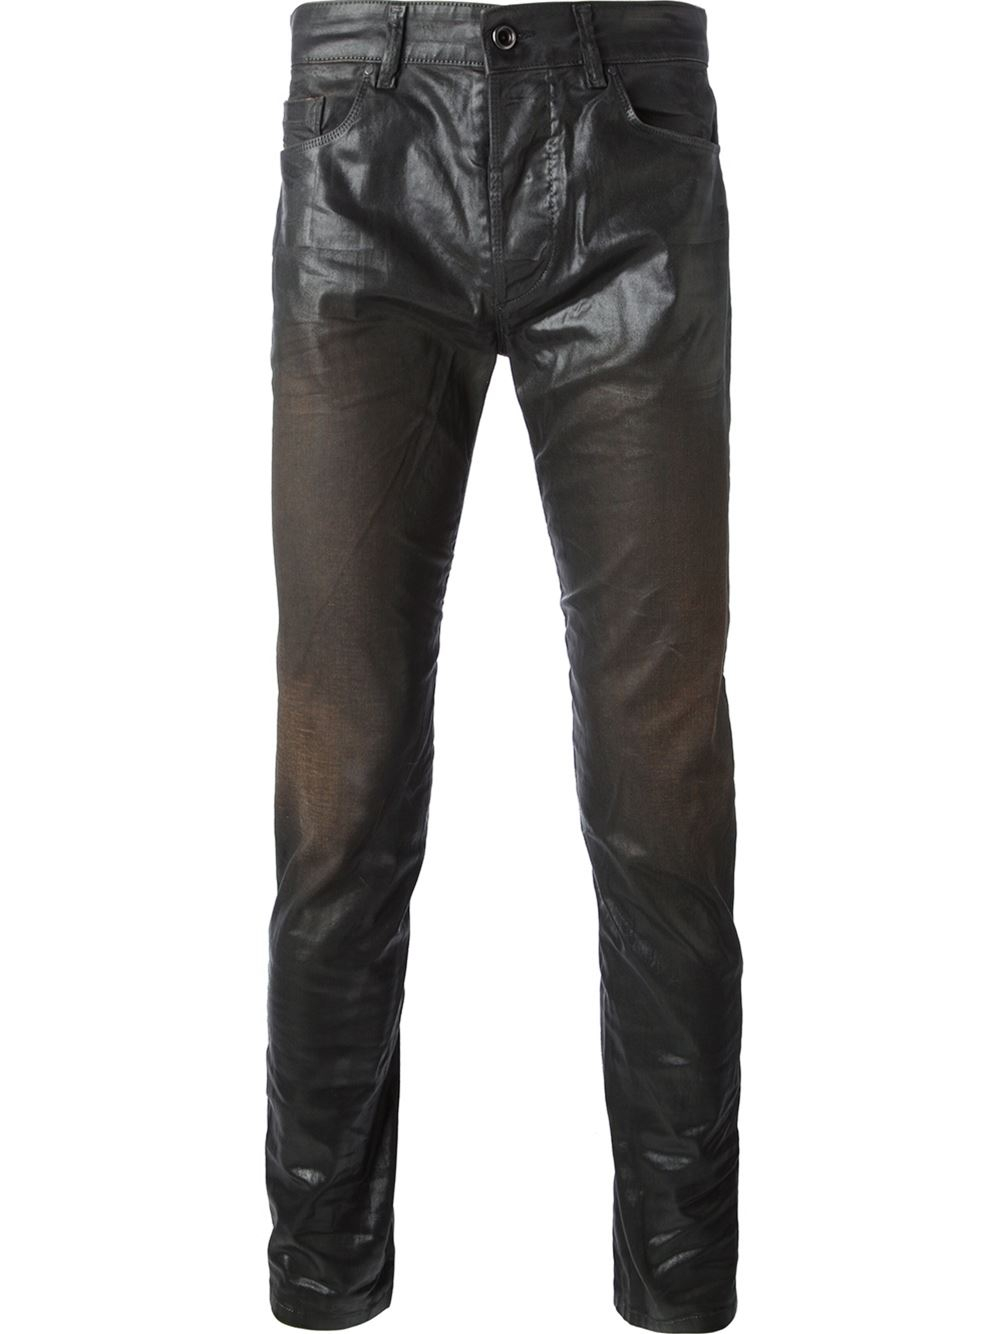 Find skinny black coated jeans at ShopStyle. Shop the latest collection of skinny black coated jeans from the most popular stores - all in one place.